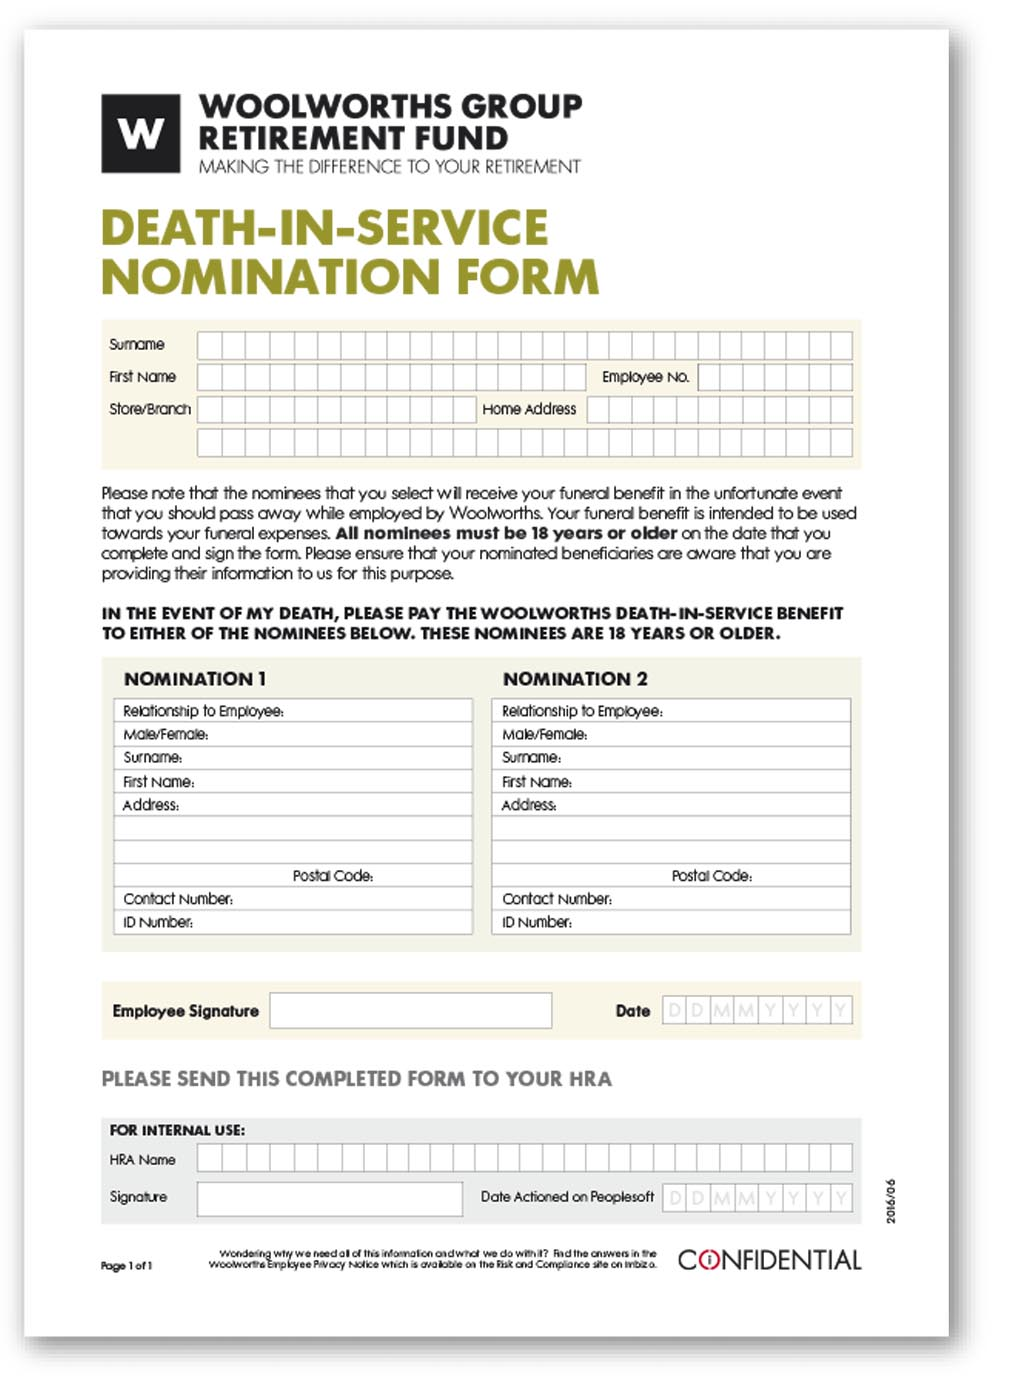 Death-In-Service Nomination